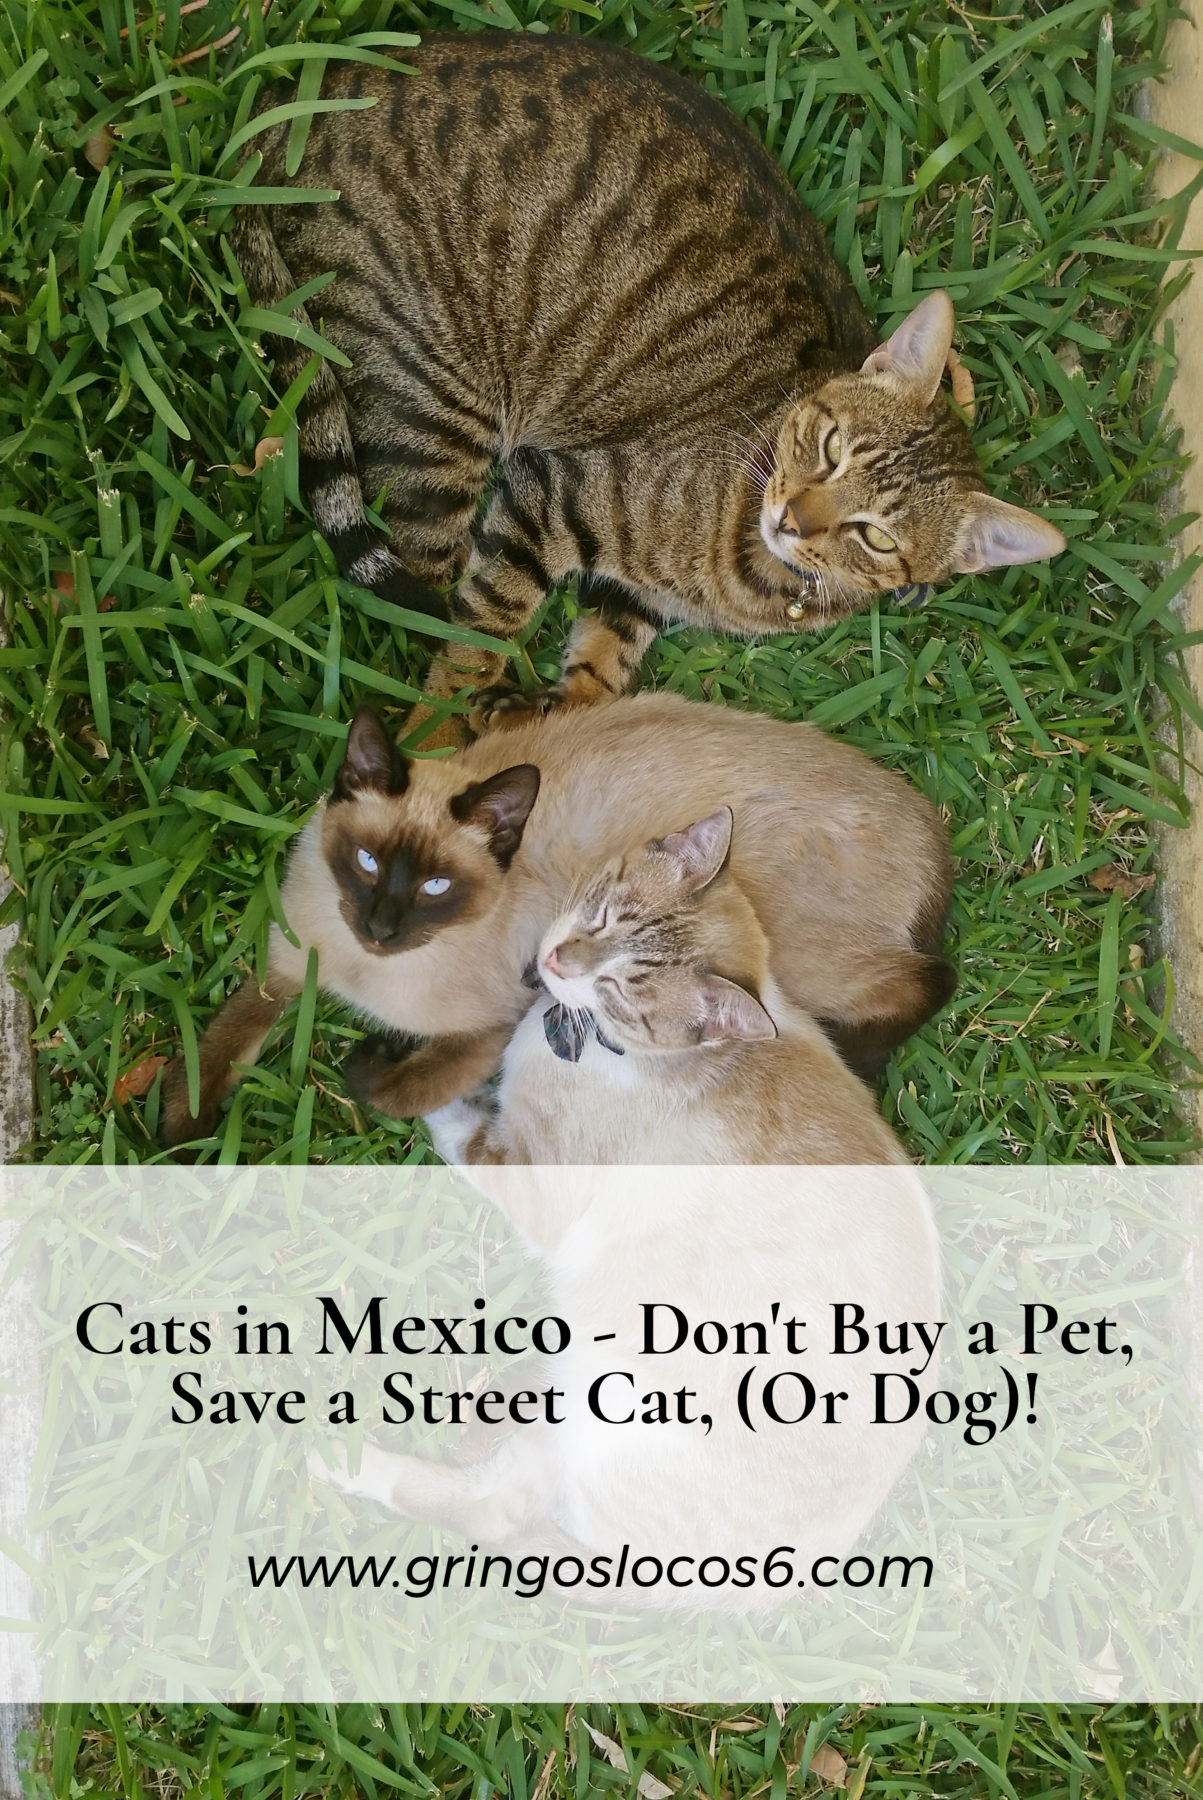 Cats in Mexico - Don't Buy a Pet, Save a Street Cat, (Or Dog)